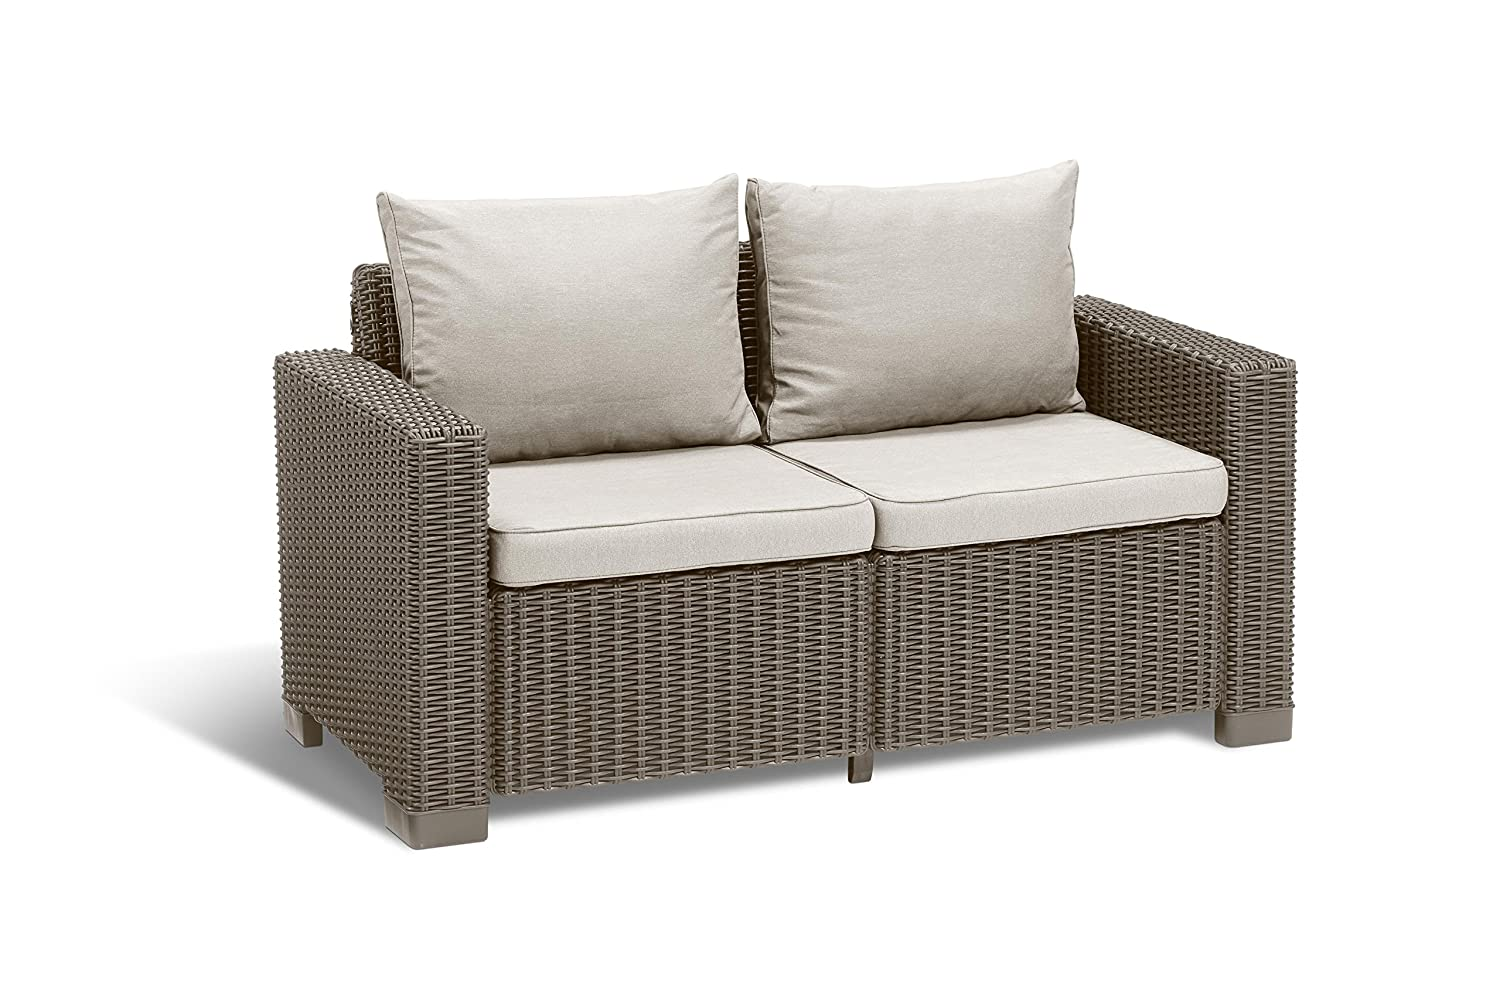 Allibert Lounge Sofa California 2-Sitzer, cappuccino panama sand